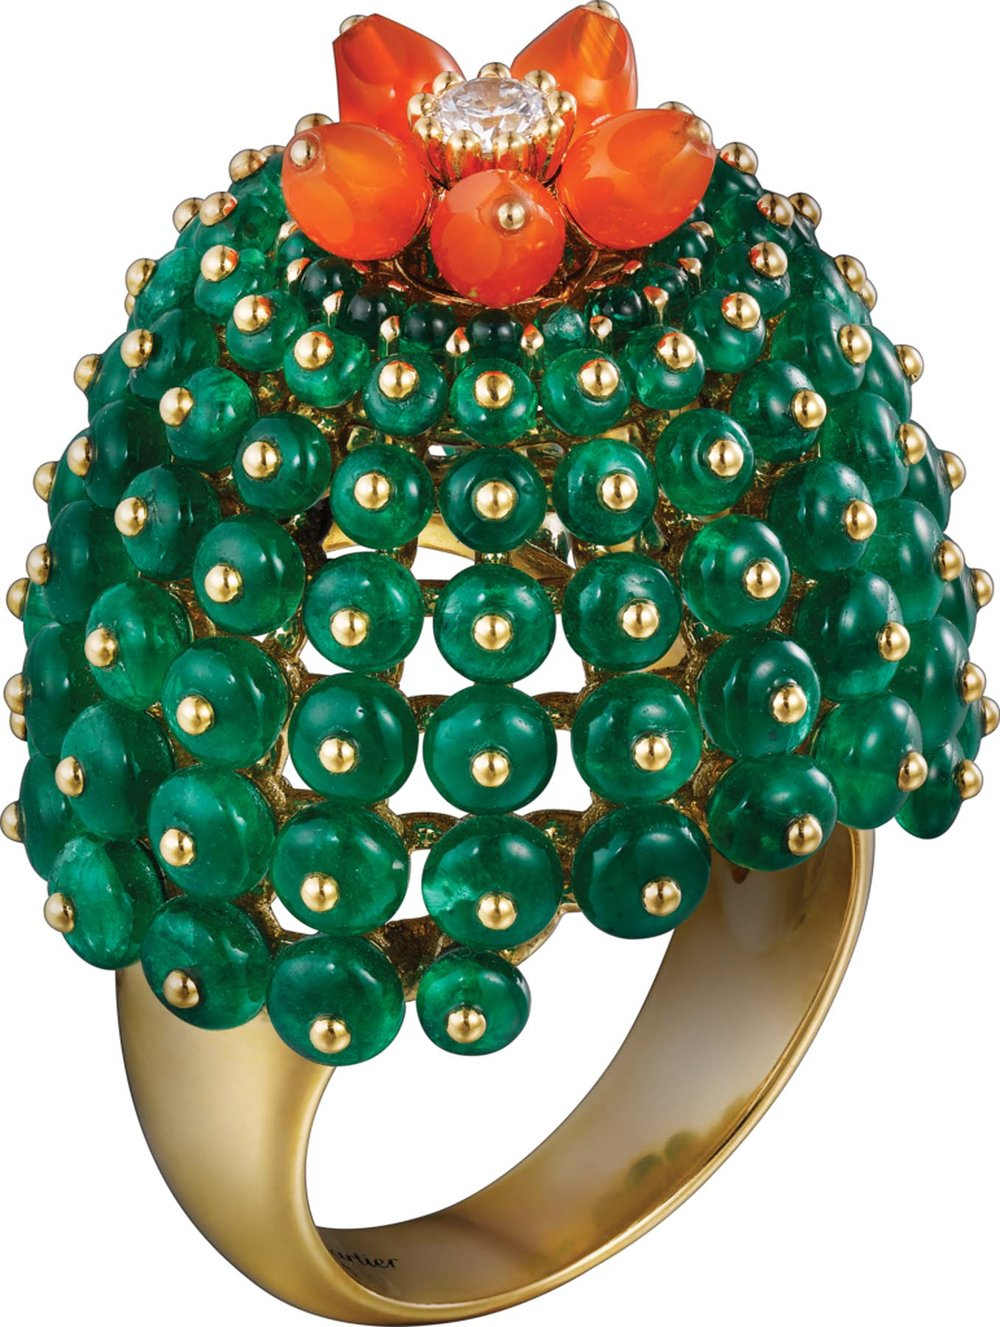 Cactus de Cartier Ring by Cartier Price upon request 卡地亞仙人掌戒指